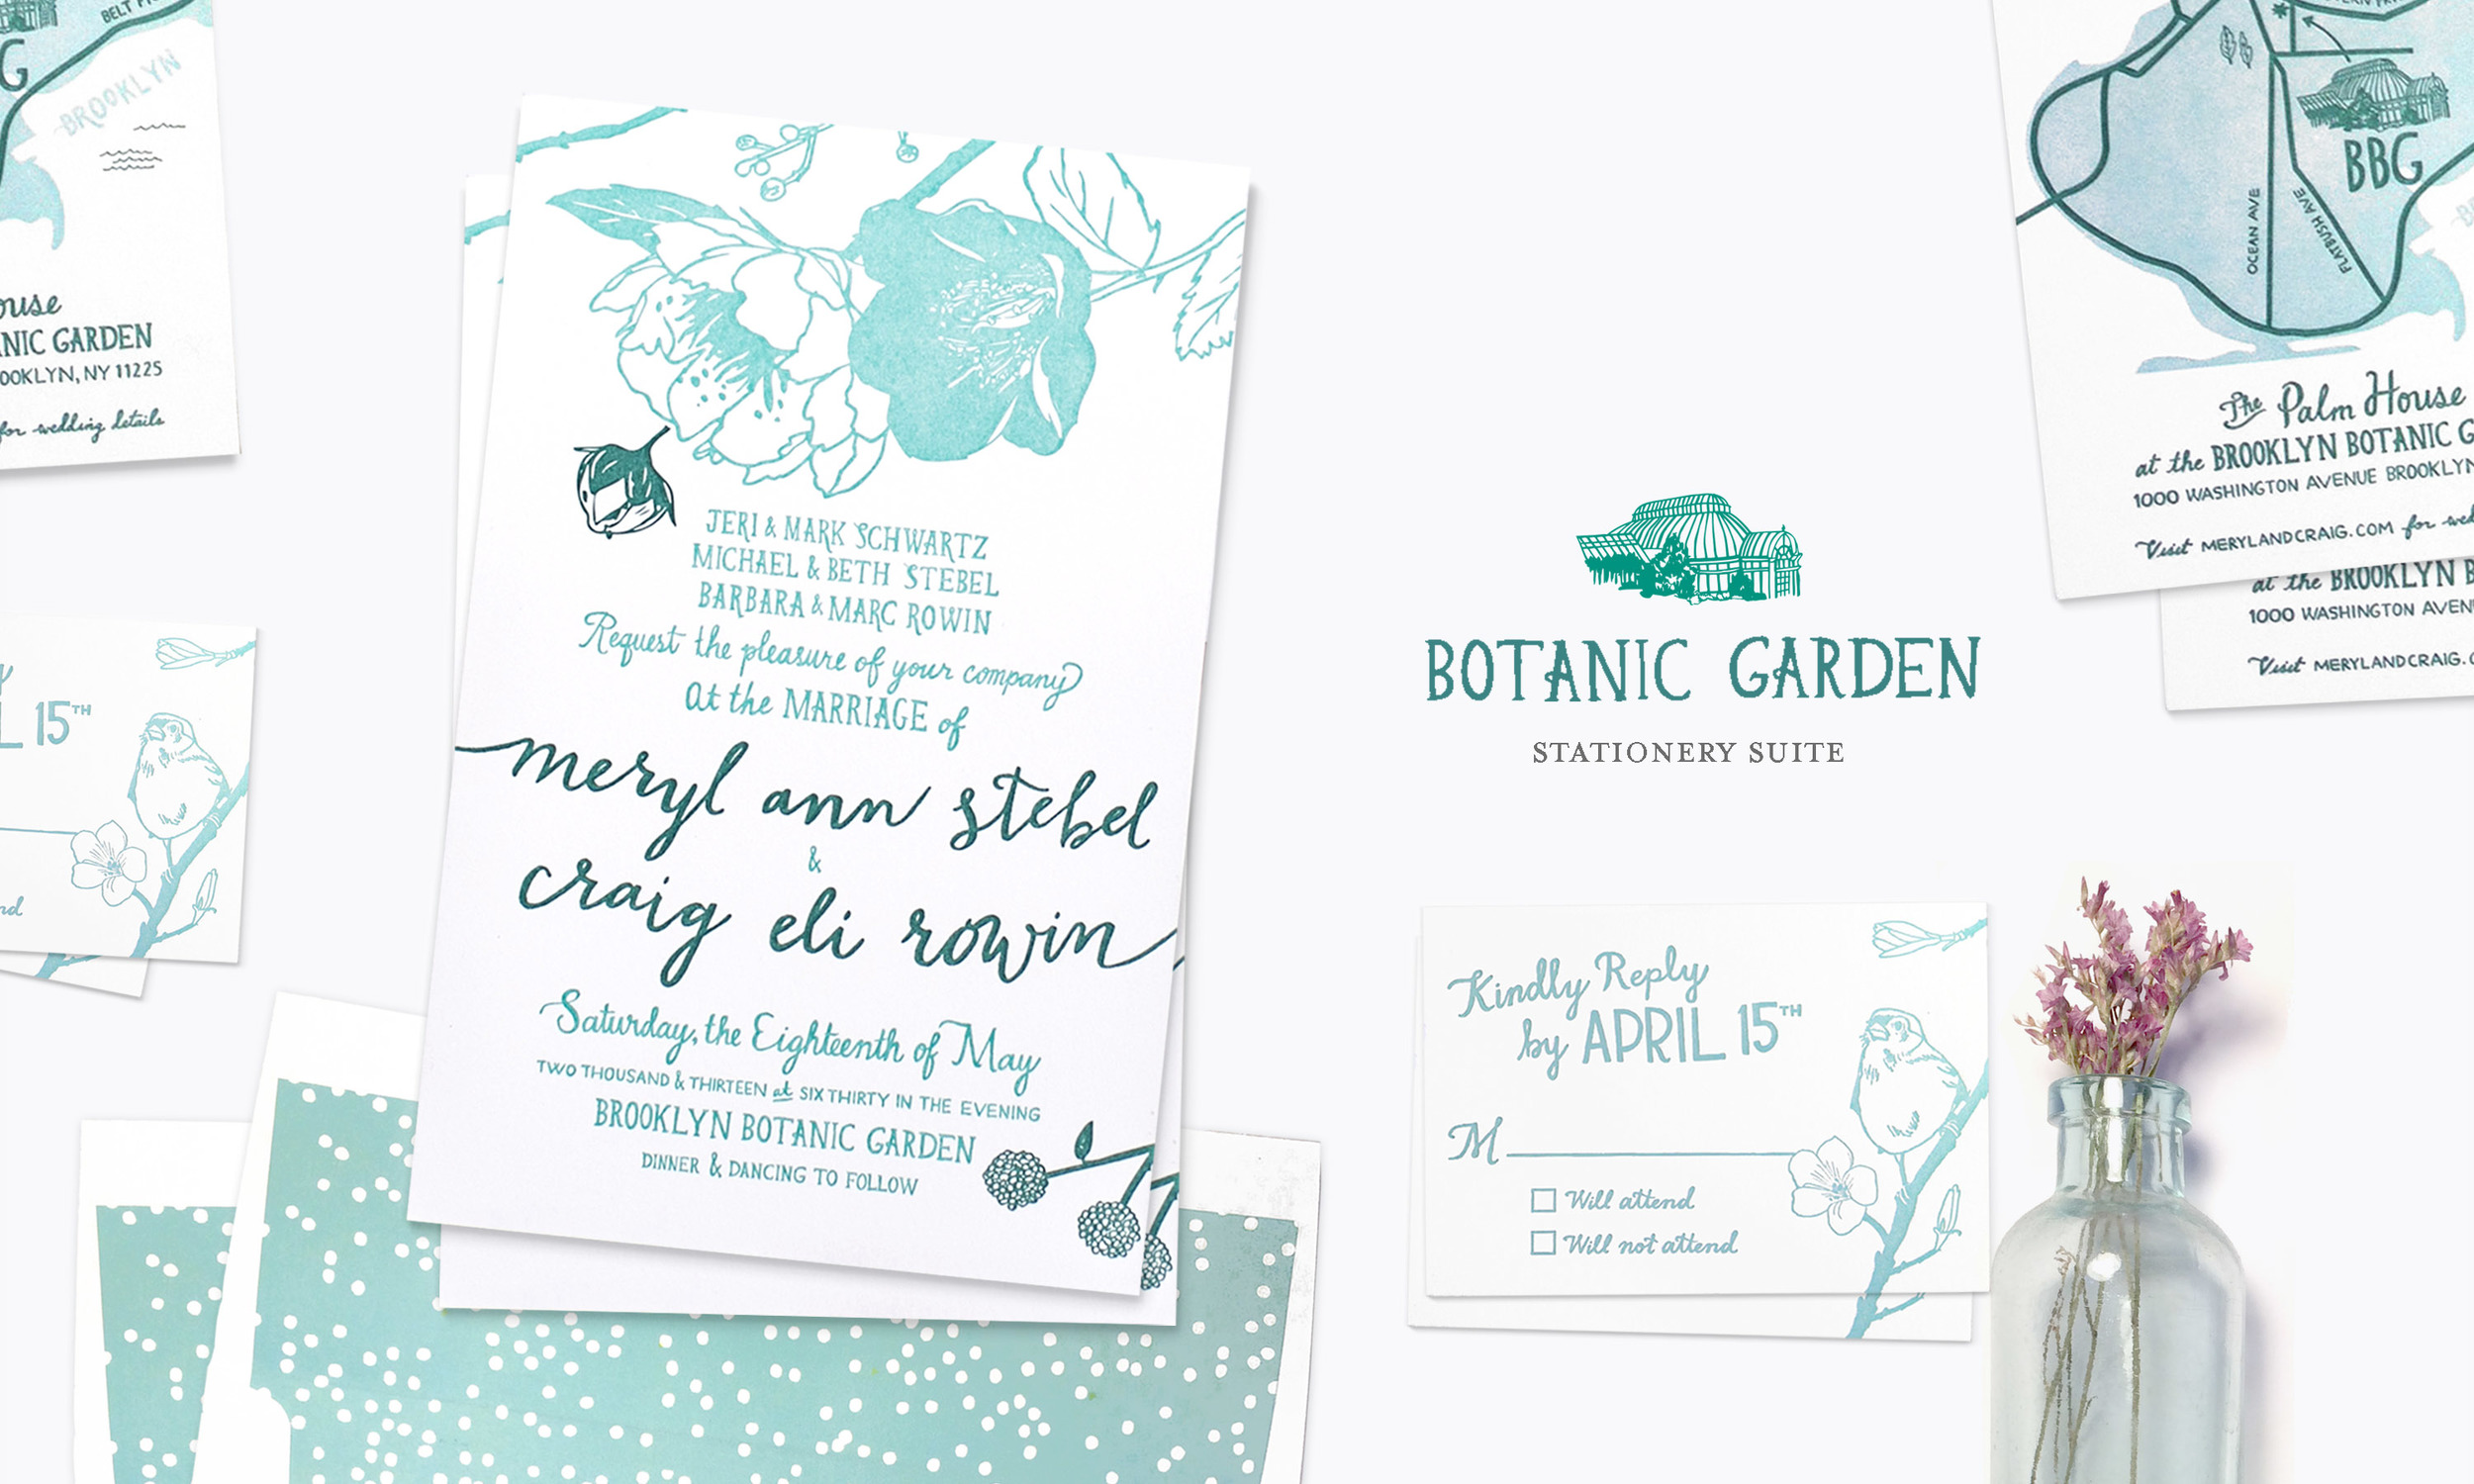 Botanic Garden Wedding Stationery Suite by Yay Paper Co.